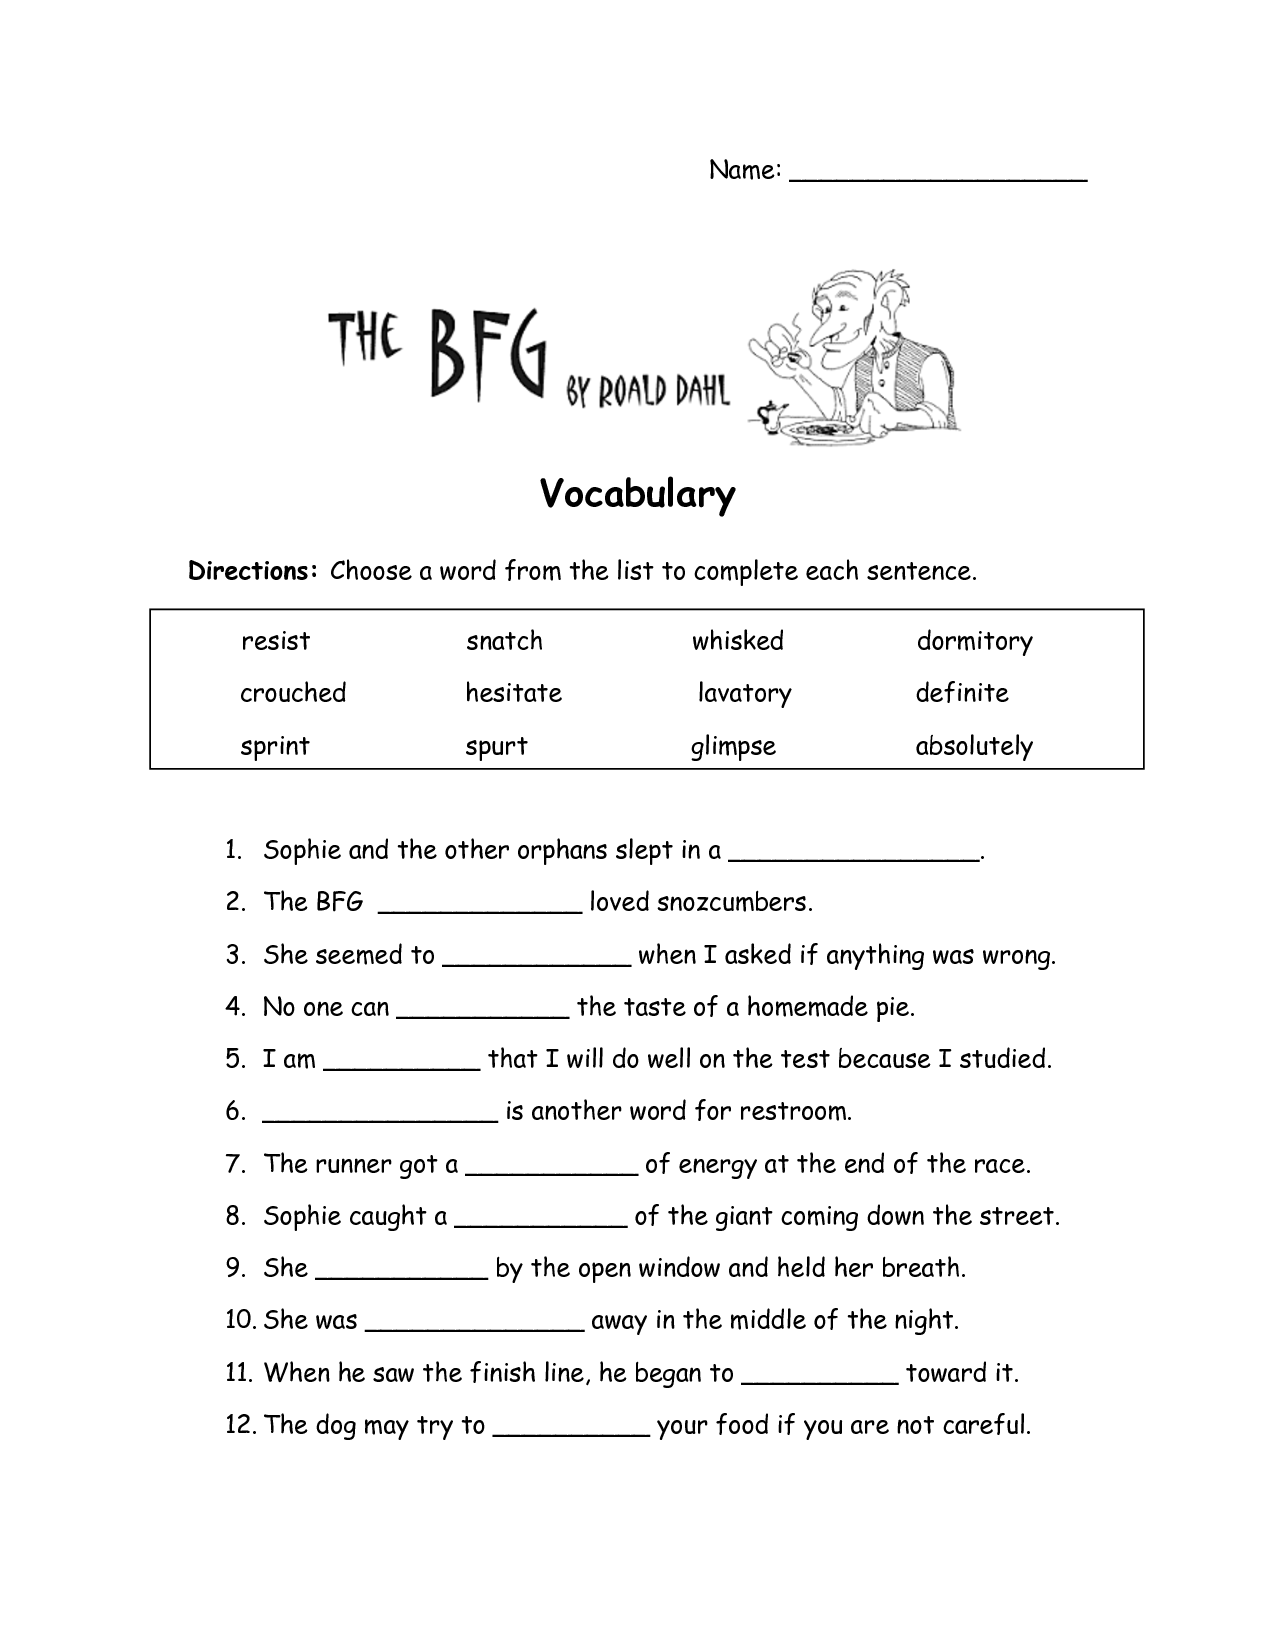 free vocabulary worksheets printable free french printable worksheetsfree family vocabulary. Black Bedroom Furniture Sets. Home Design Ideas